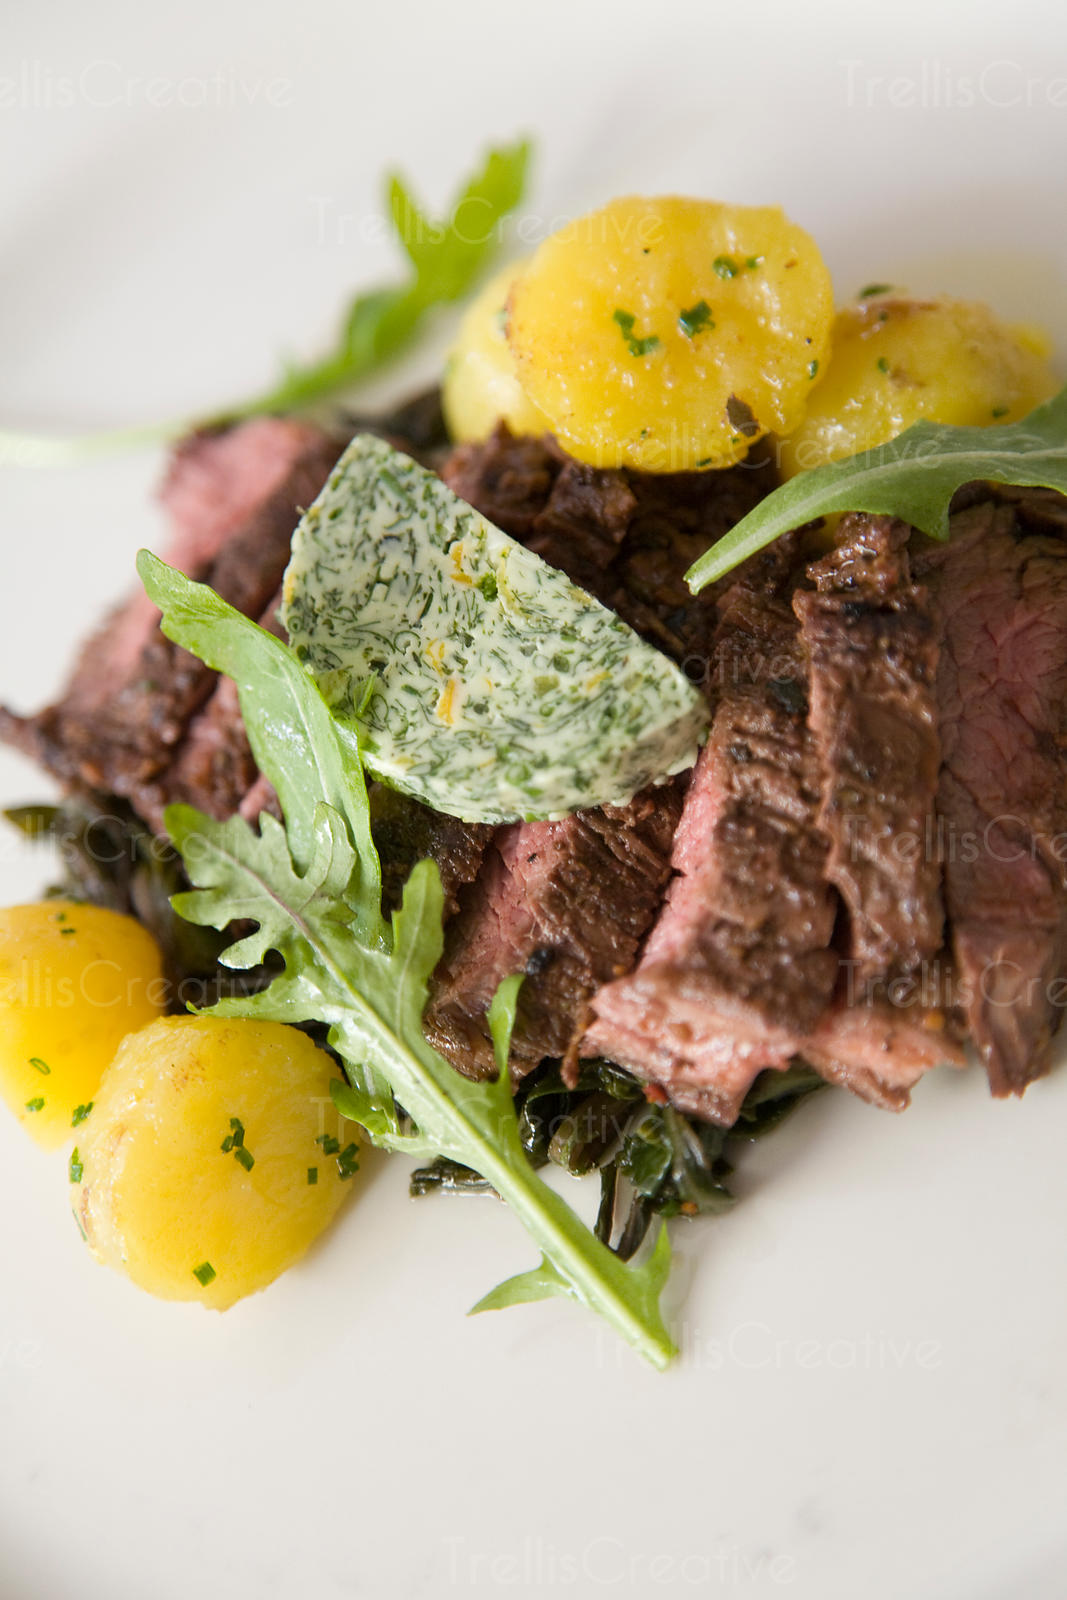 Beef flank steak served with potatoes and tarragon butter